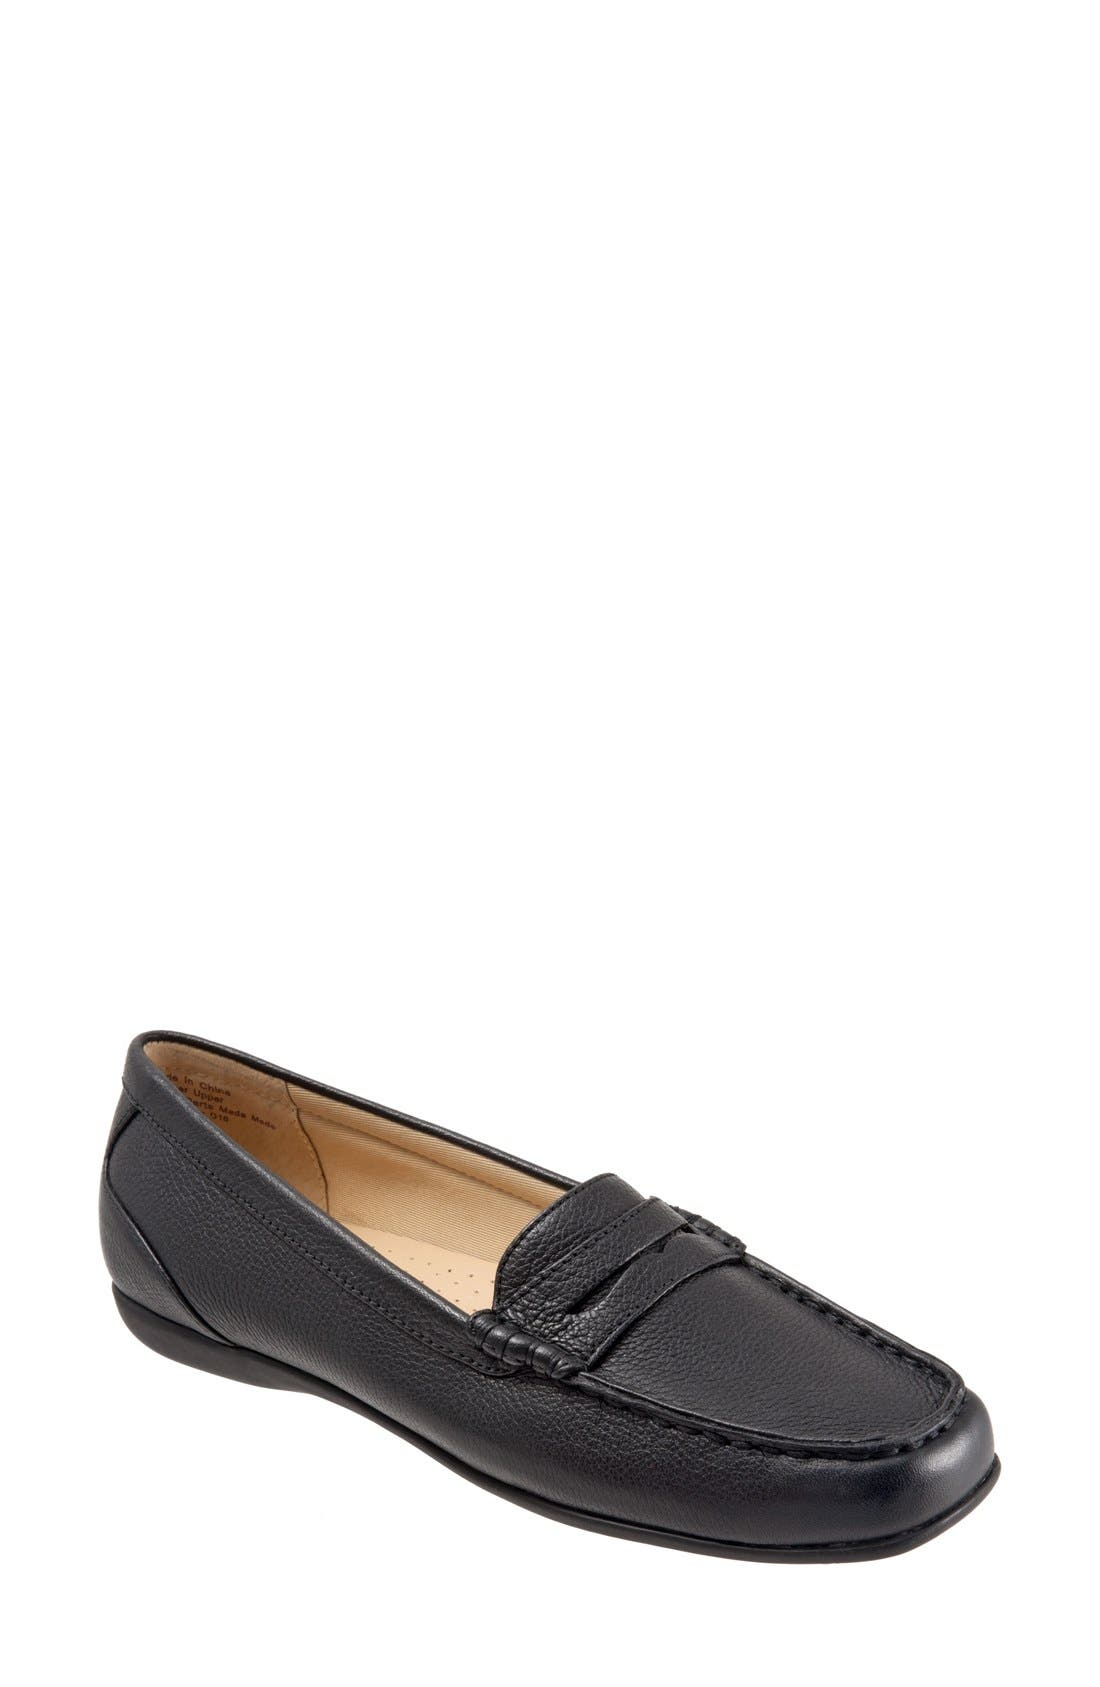 'Staci' Penny Loafer,                         Main,                         color, BLACK LEATHER